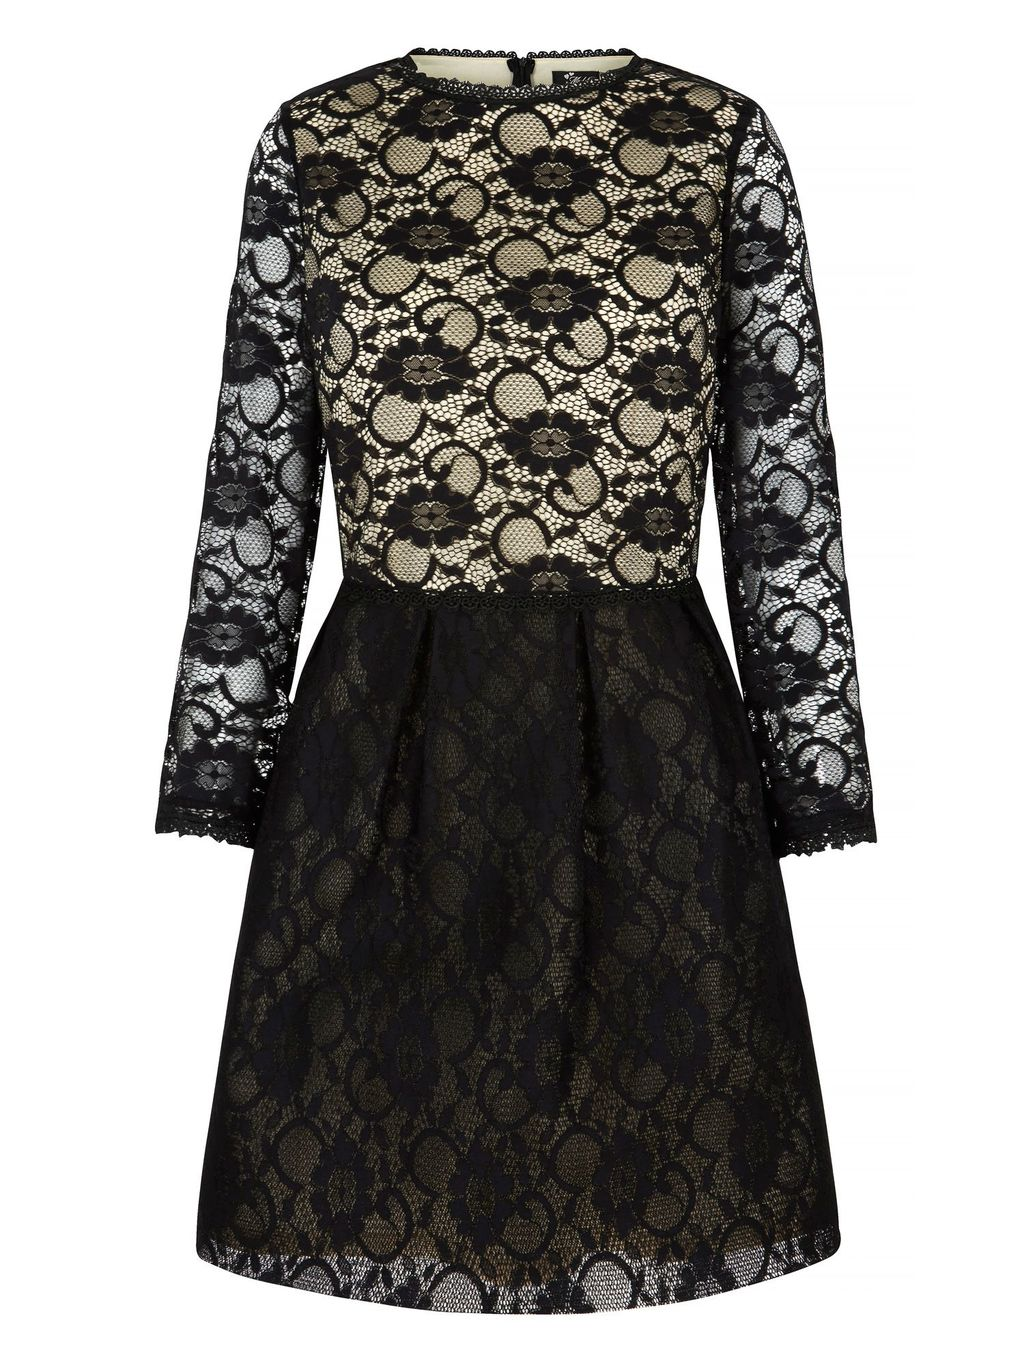 Lace Contrast Long Sleeve Dress, Black - predominant colour: black; occasions: evening; length: just above the knee; fit: fitted at waist & bust; style: fit & flare; fibres: polyester/polyamide - stretch; neckline: crew; sleeve length: 3/4 length; sleeve style: standard; texture group: lace; pattern type: fabric; pattern size: standard; pattern: patterned/print; embellishment: lace; season: a/w 2015